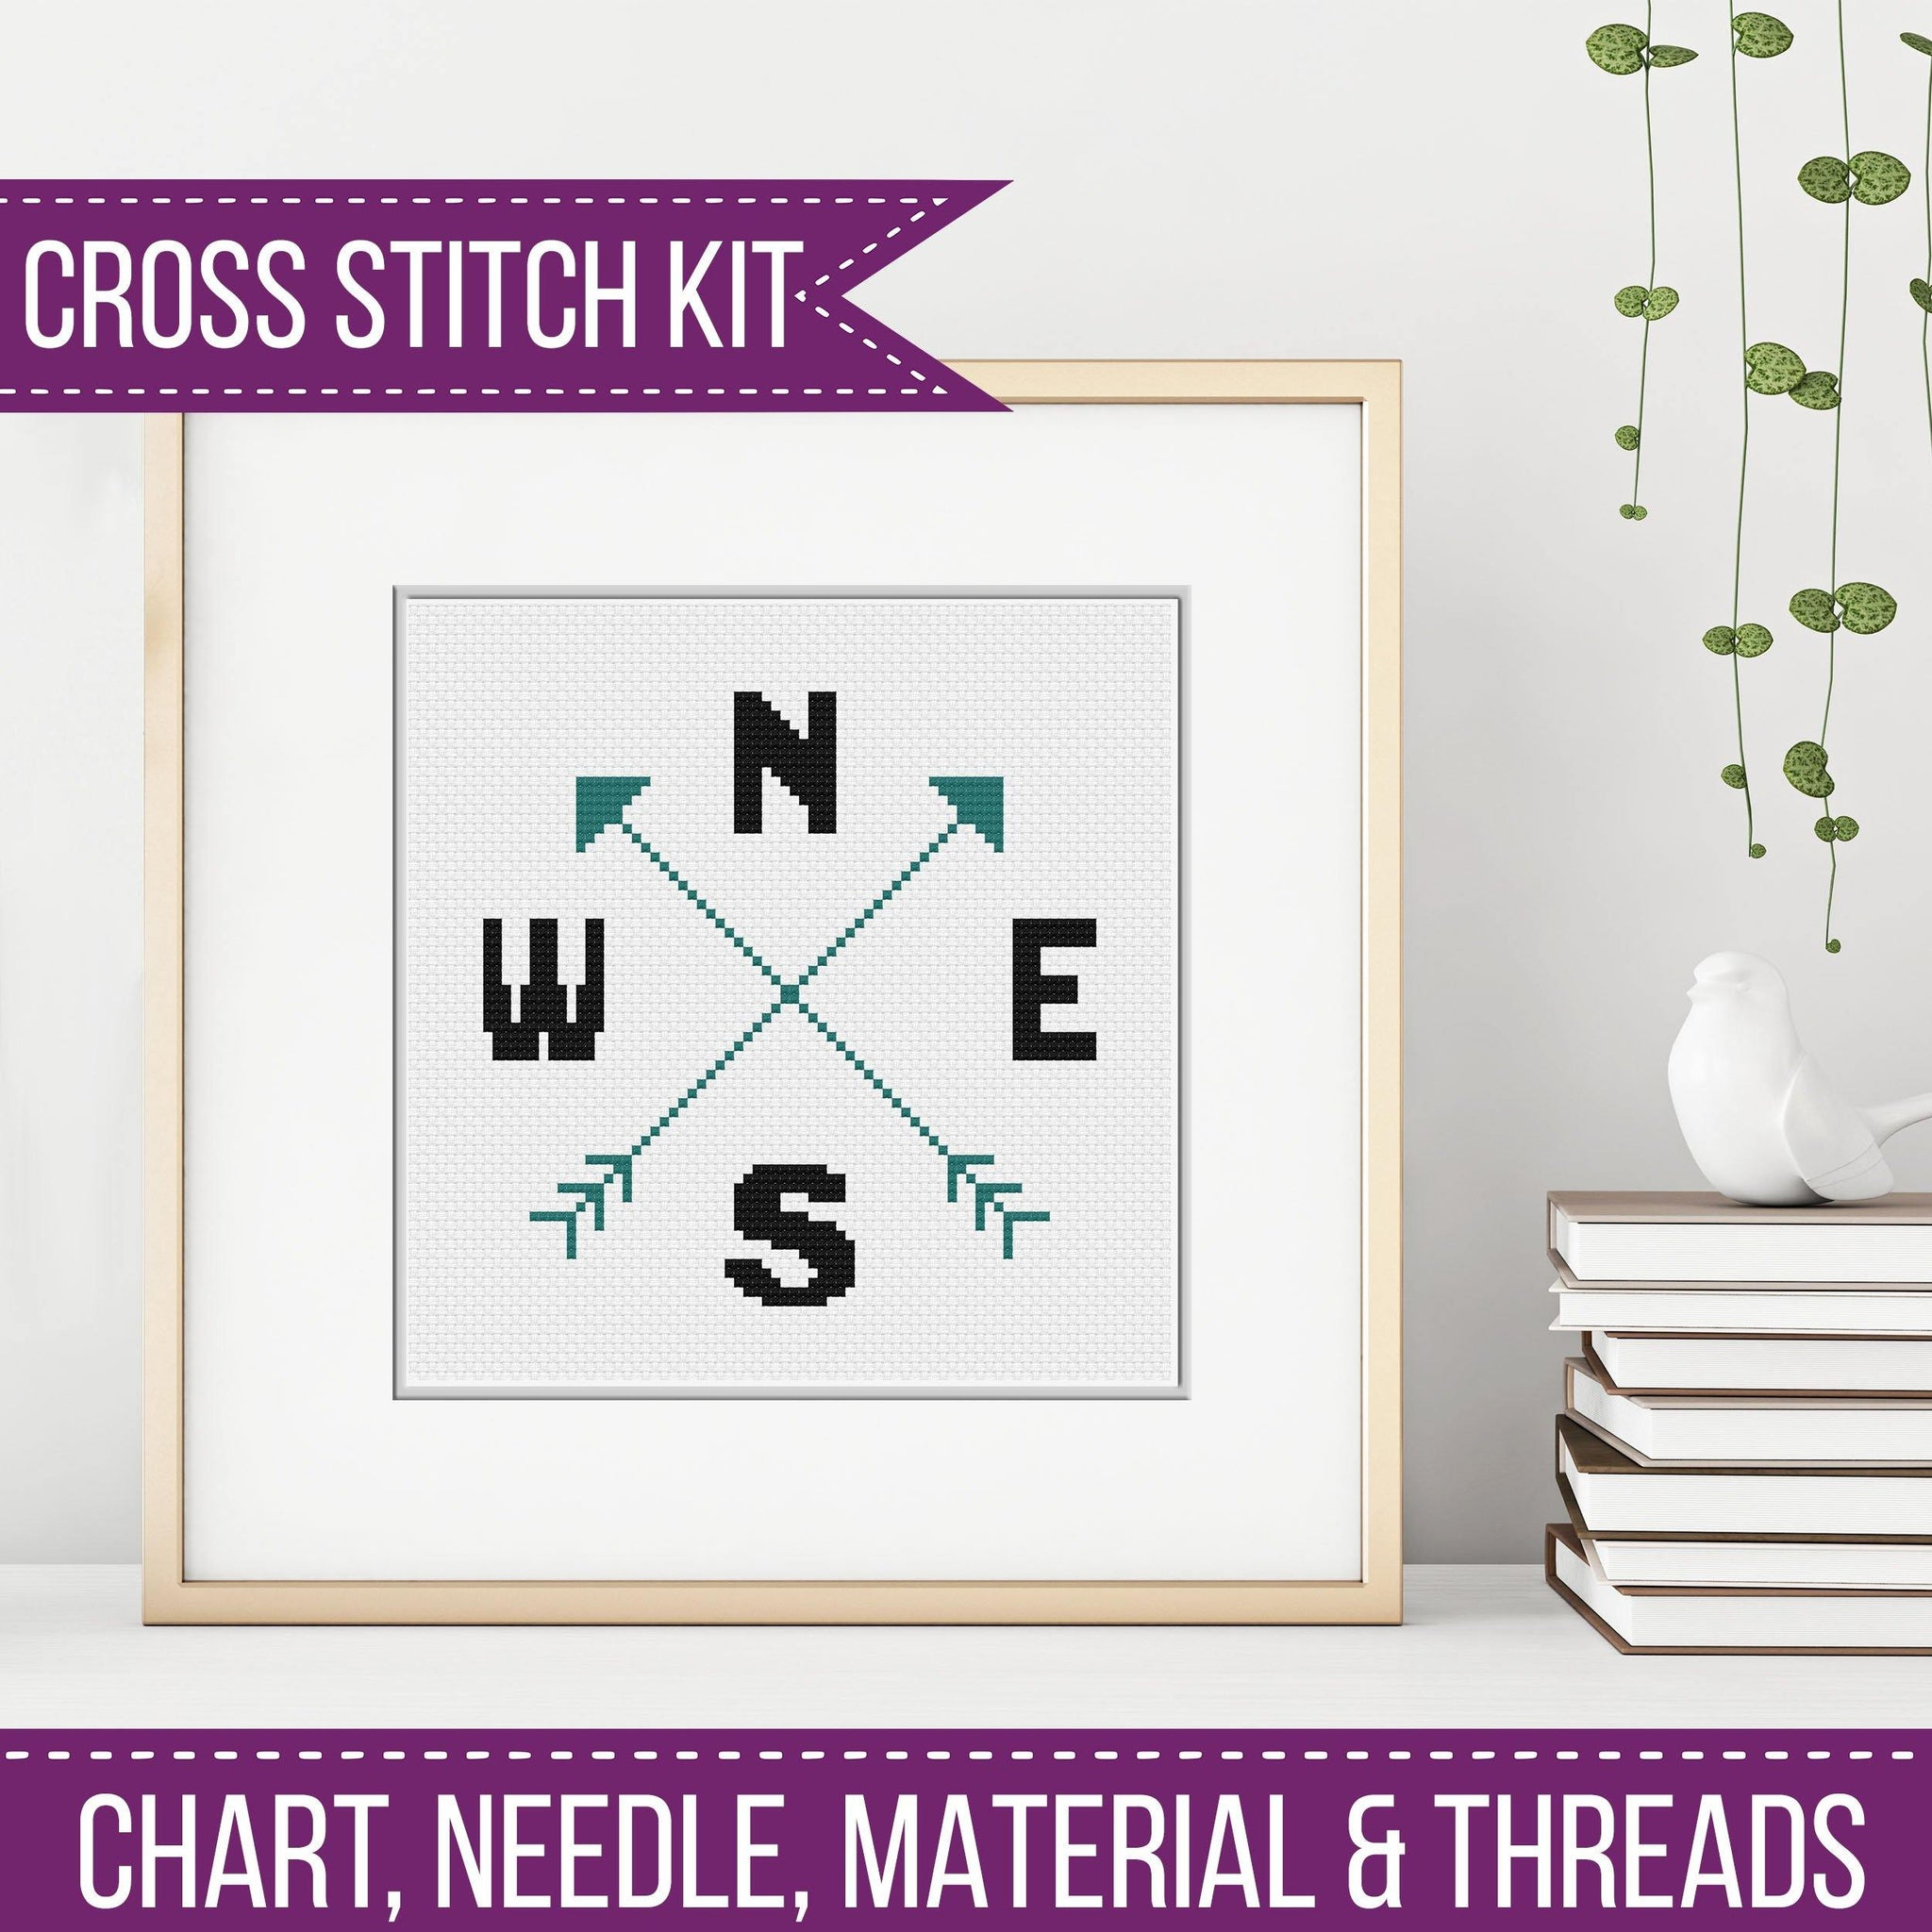 Compass Cross Stitch Kit